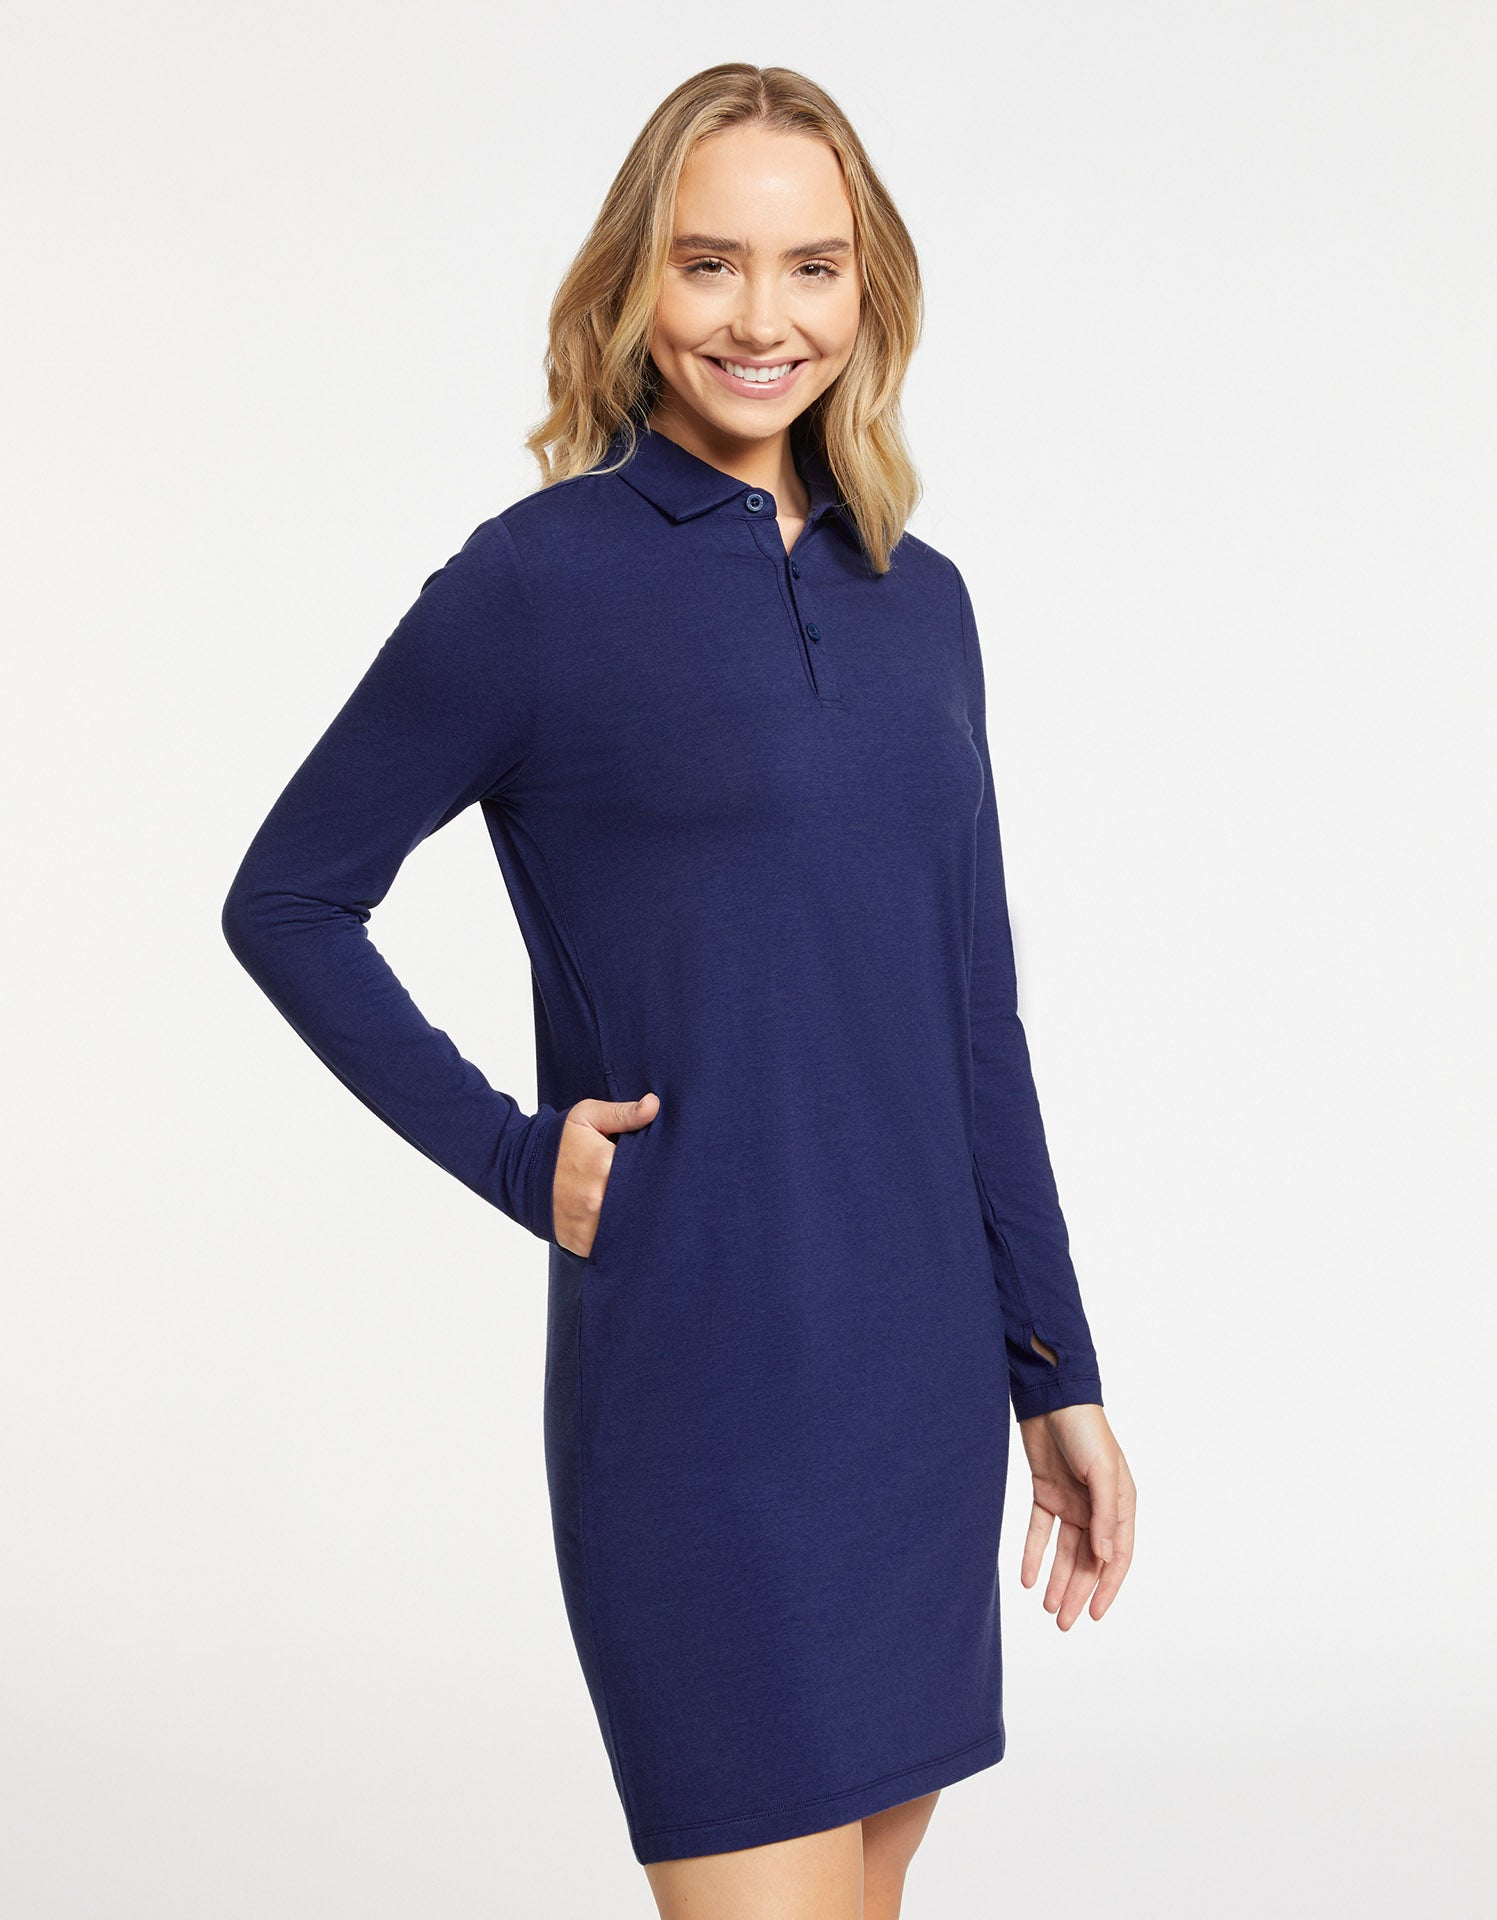 Solbari Sun Protection Women UPF50+ Long Sleeve Polo Dress in Navy Sensitive Collection